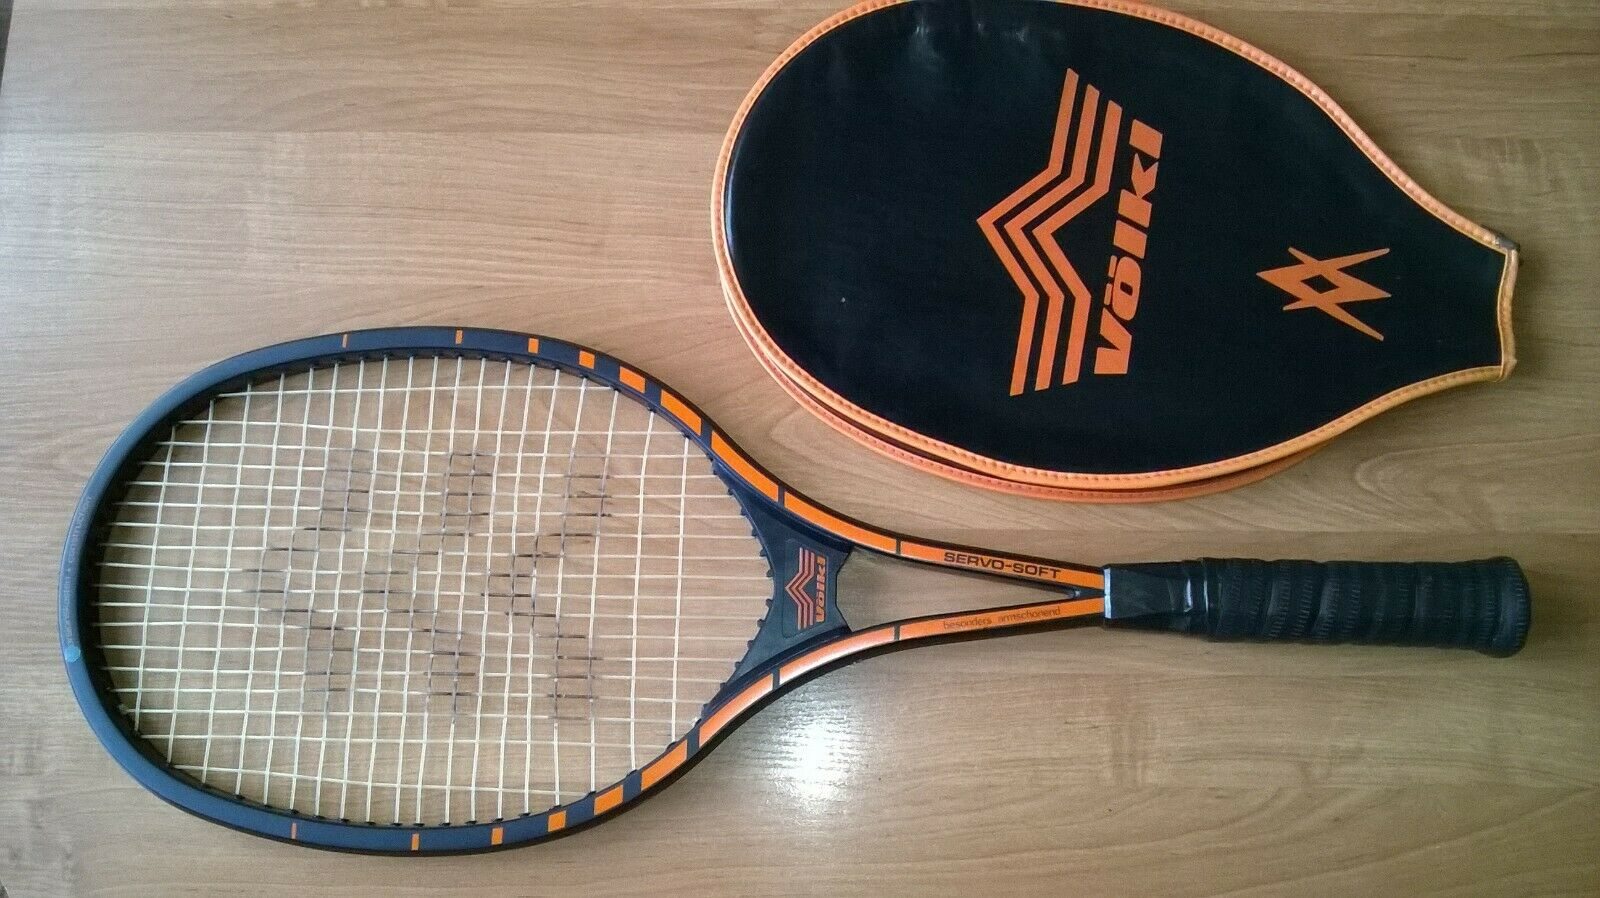 VINTAGE,1978,TENNIS RACKET VOLKL SERVO-SOFT+COVER,EXCLUSIVE TENNIS COLLECTION